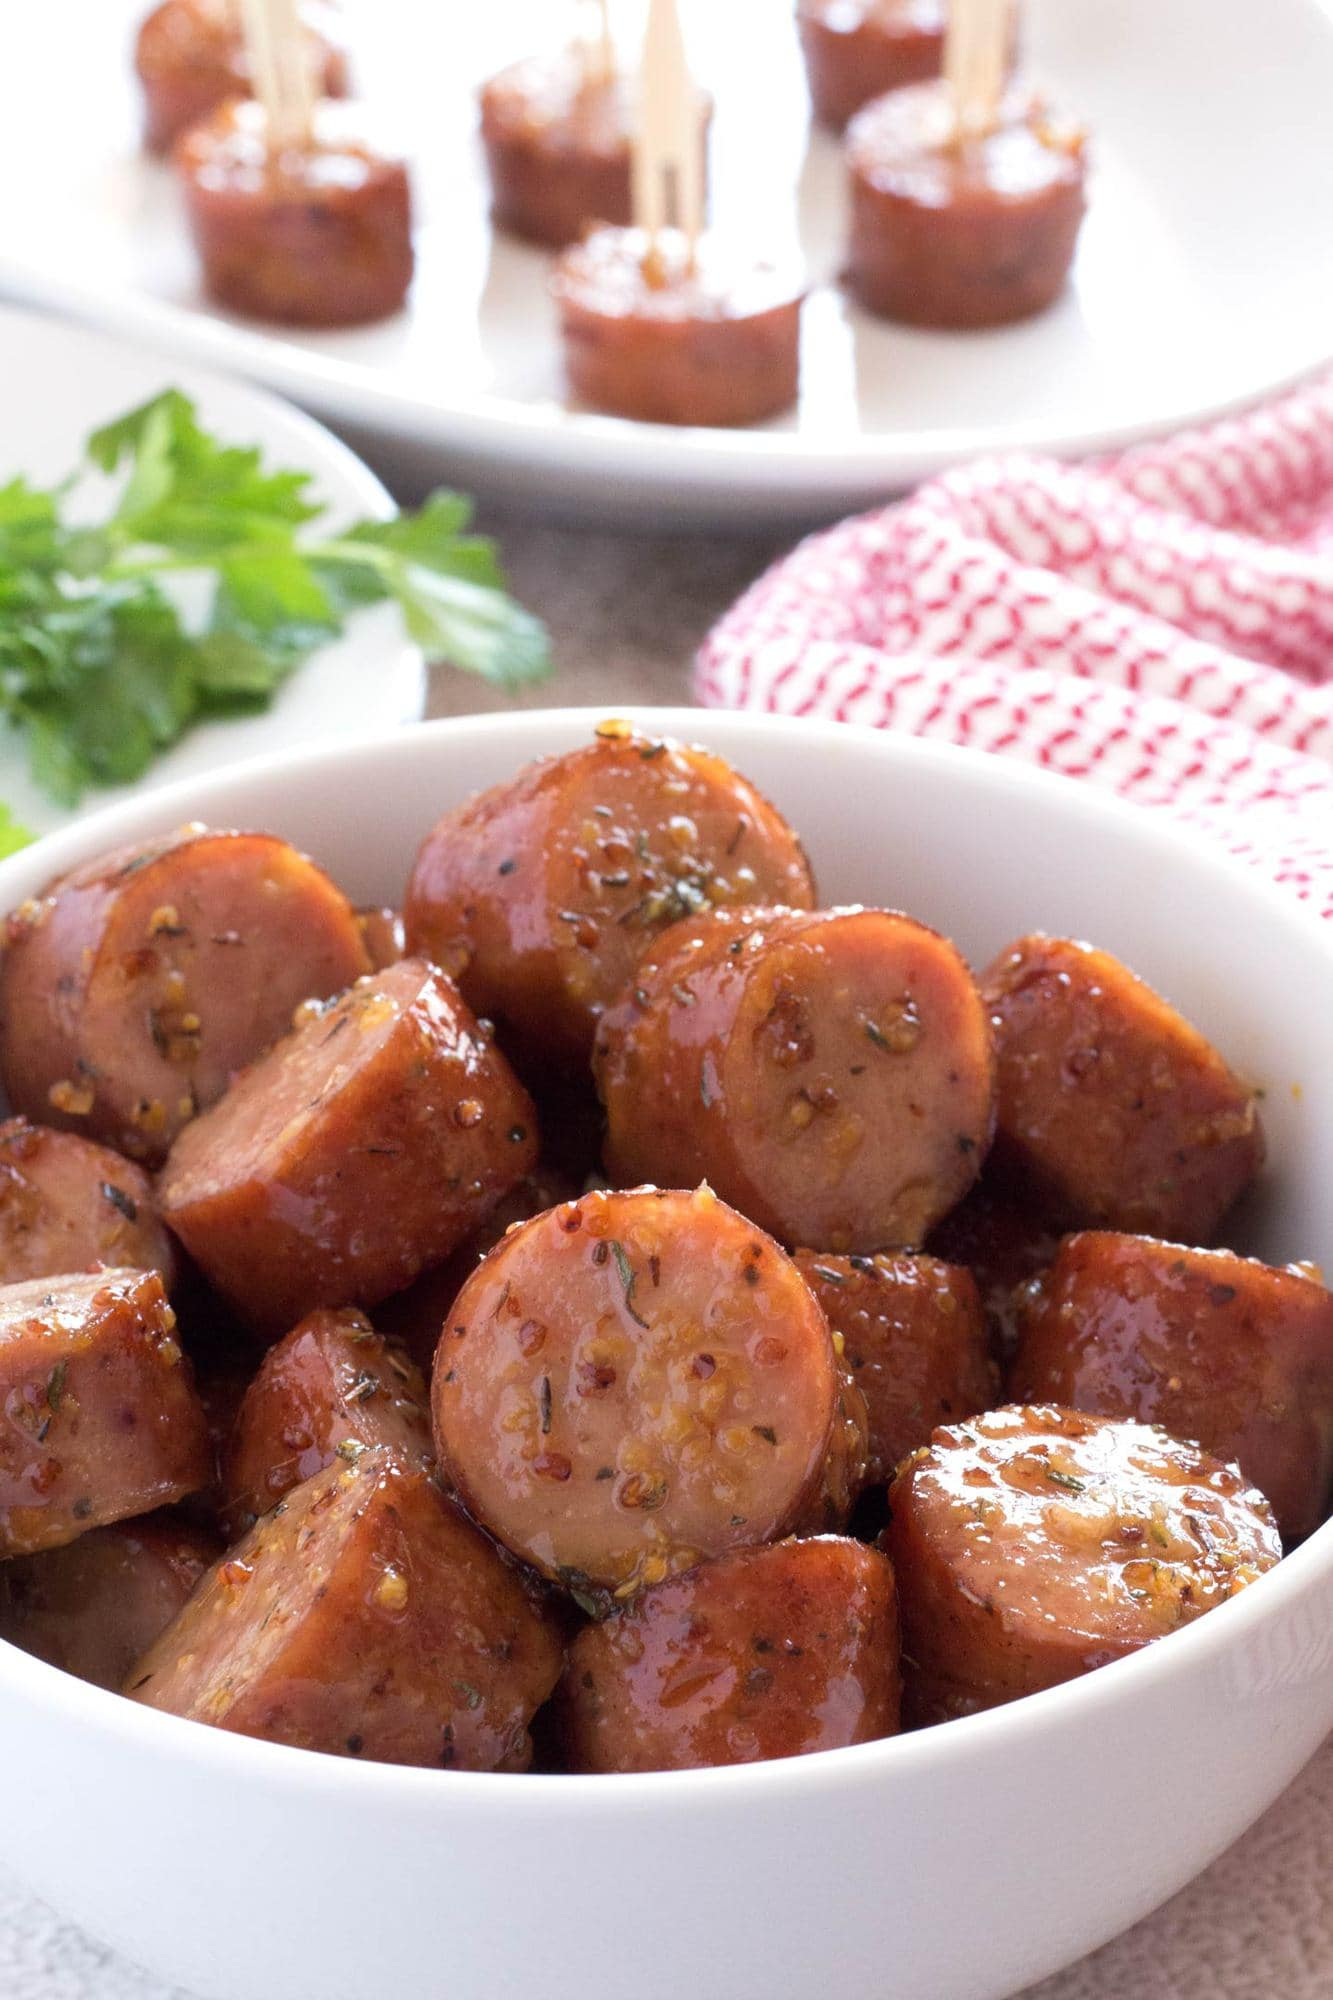 Pile of sausage bites in a bowl covered in maple glaze.